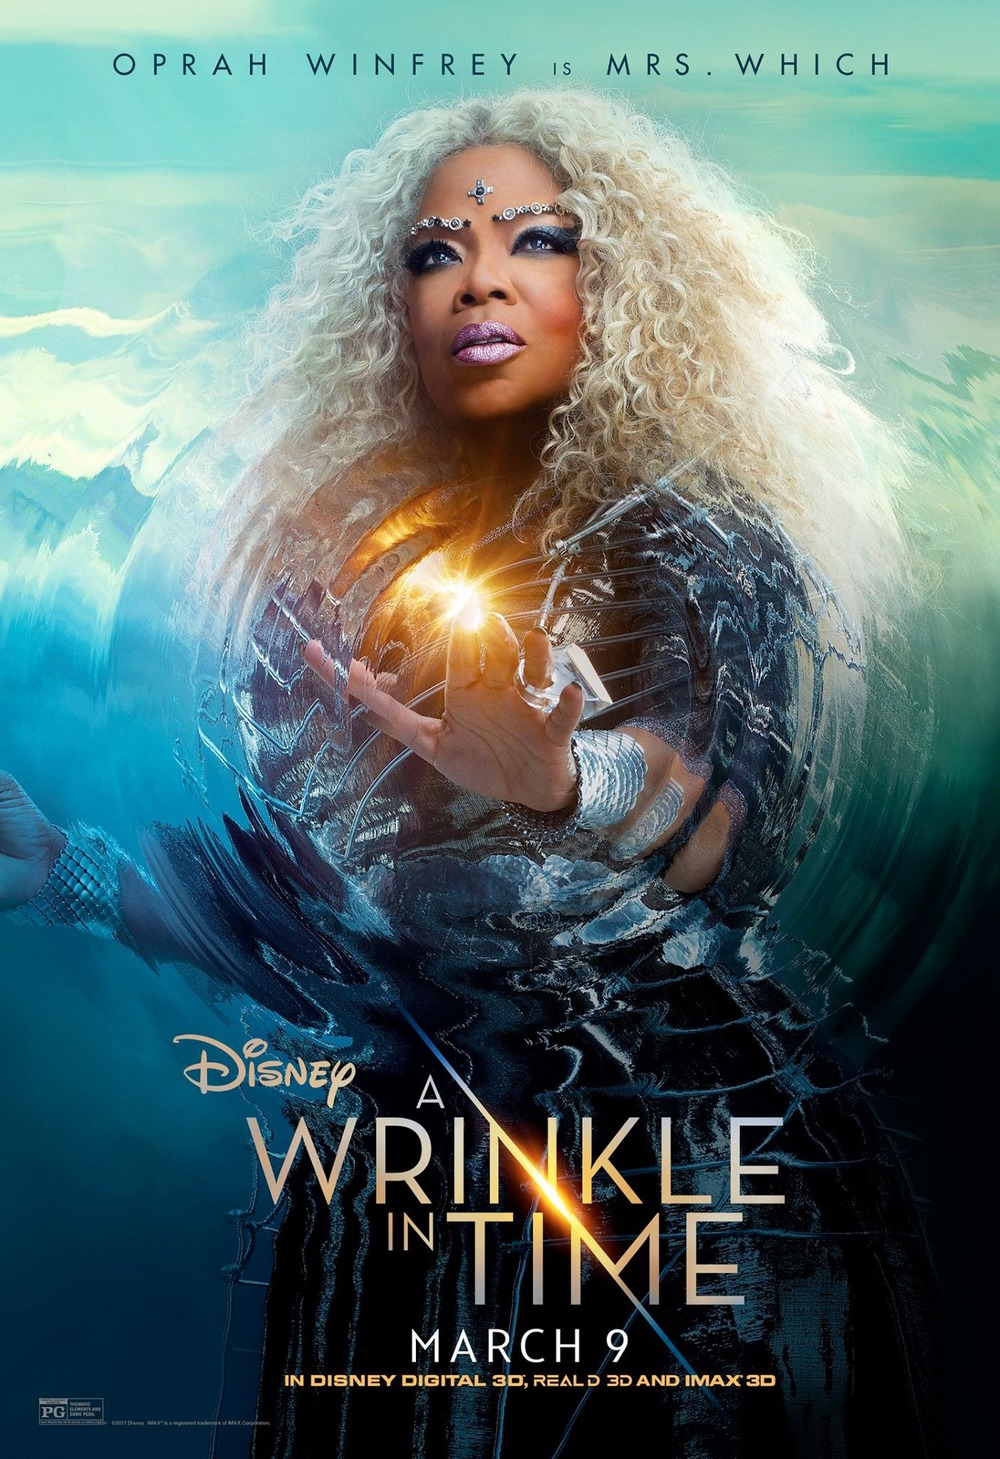 Wrinkle in Time cover art